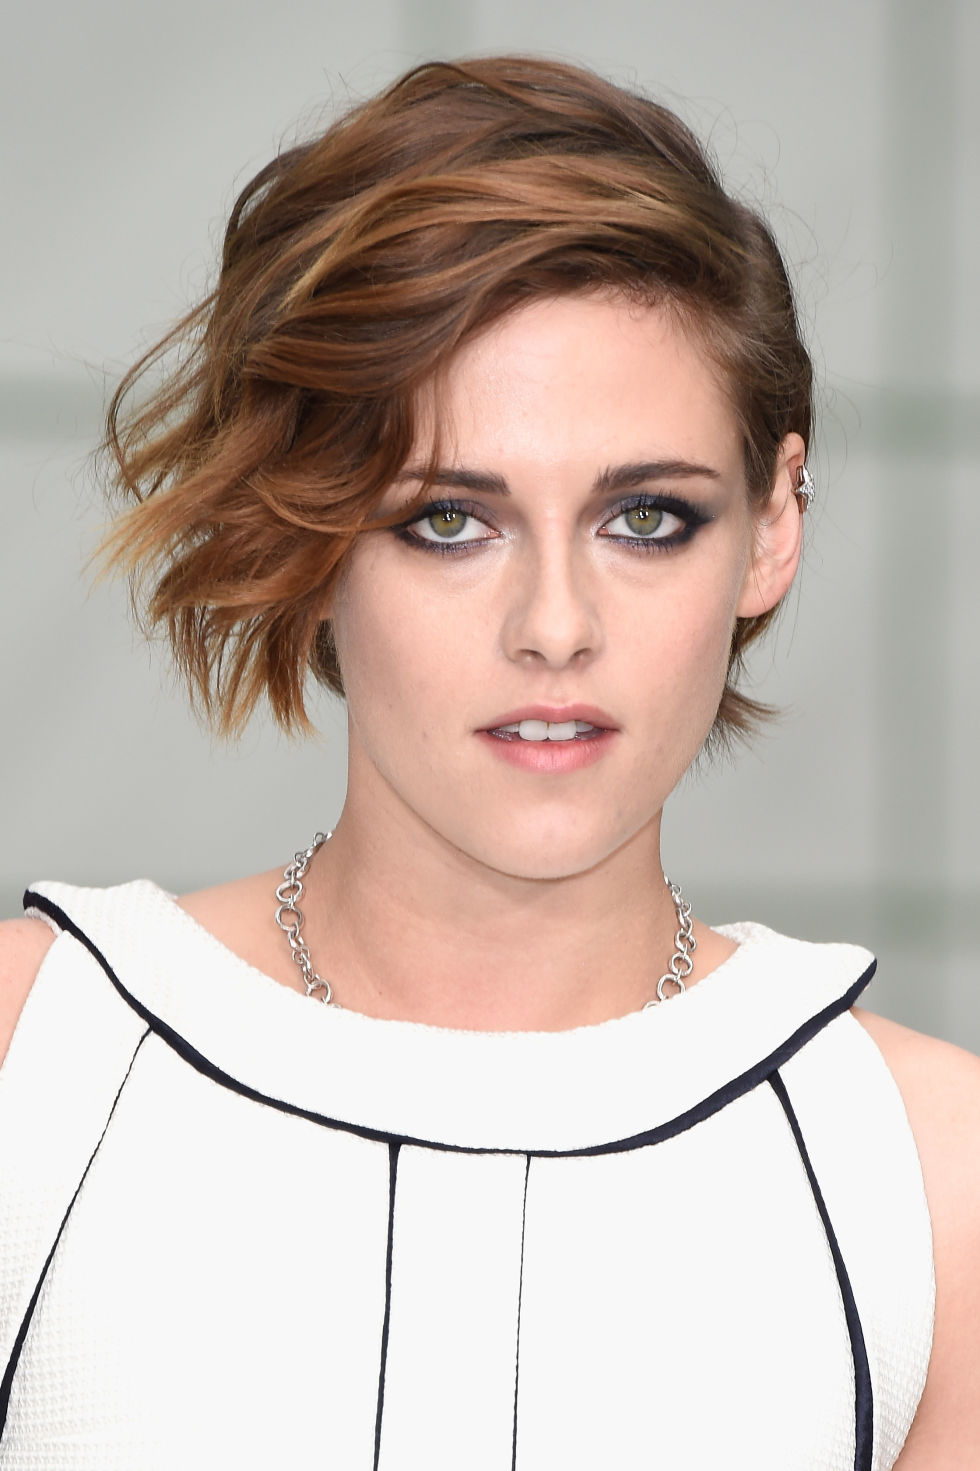 Bob Cut Hairstyles ashleys hairstyle sleek and clean bob cut a line with blunt ends 45 Best Bob Styles Of 2017 Bob Haircuts Hairstyles For Women